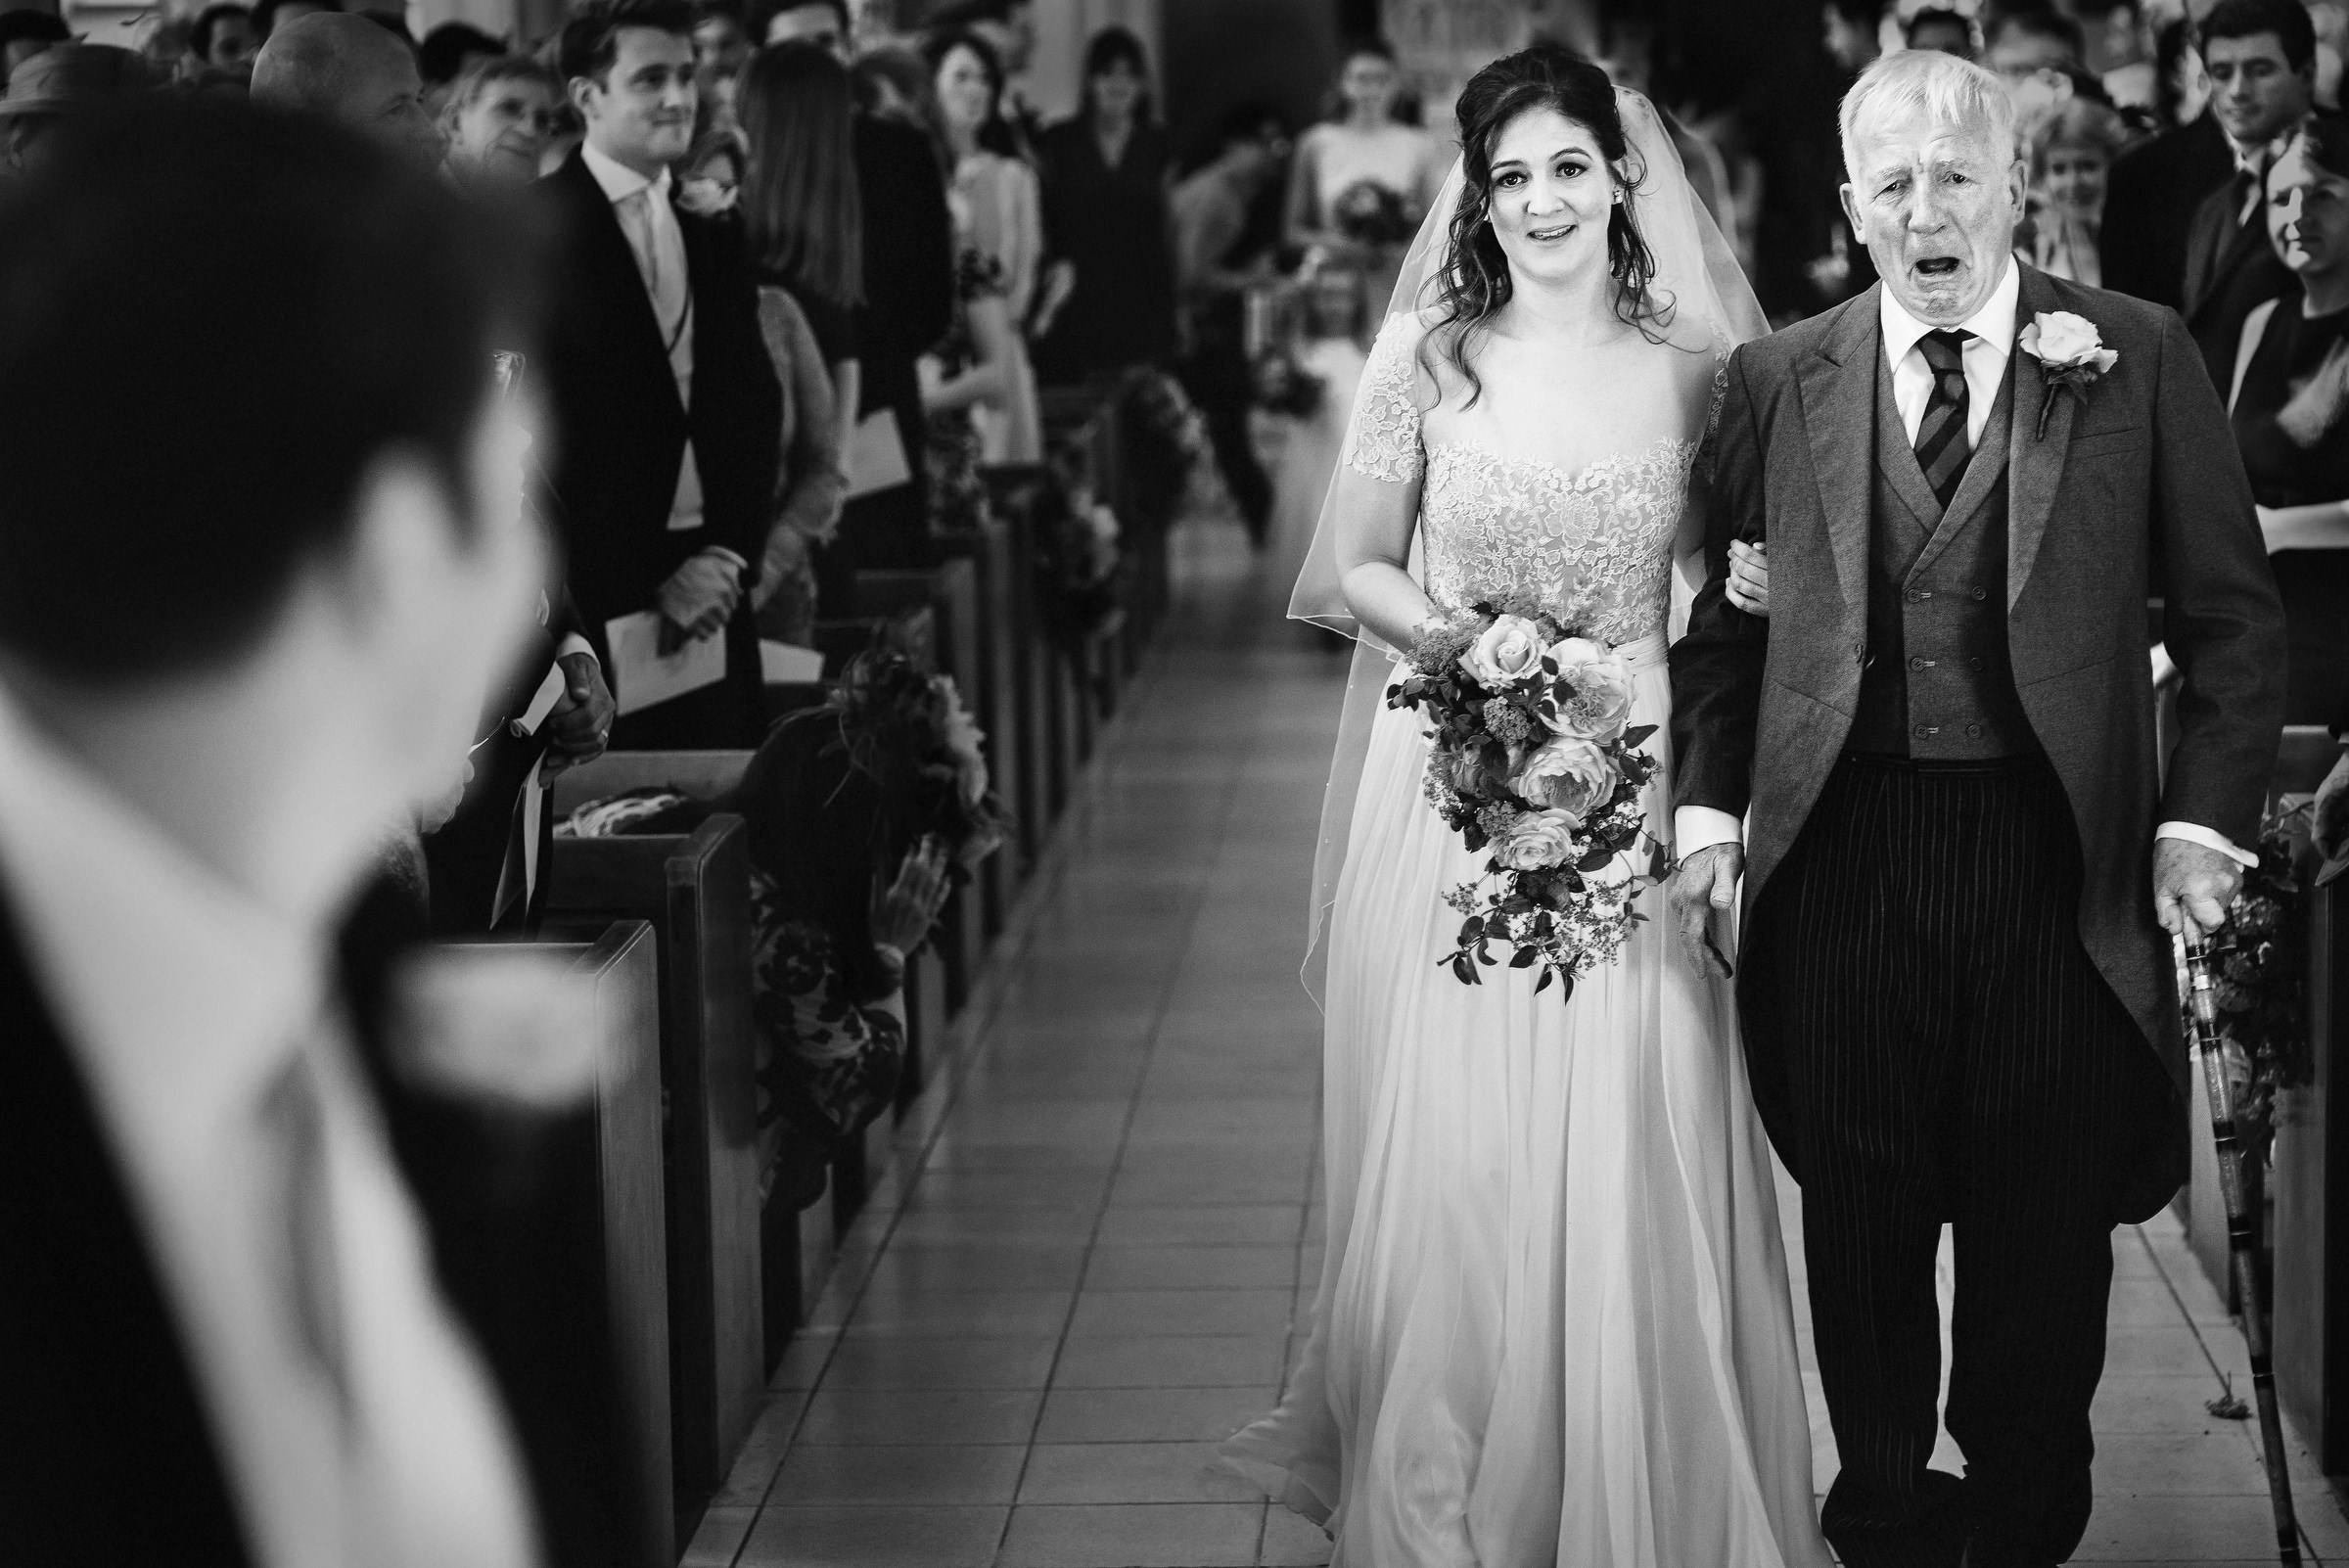 bride-walks-up-aisle-with-grandpa-andy-gaines-photography